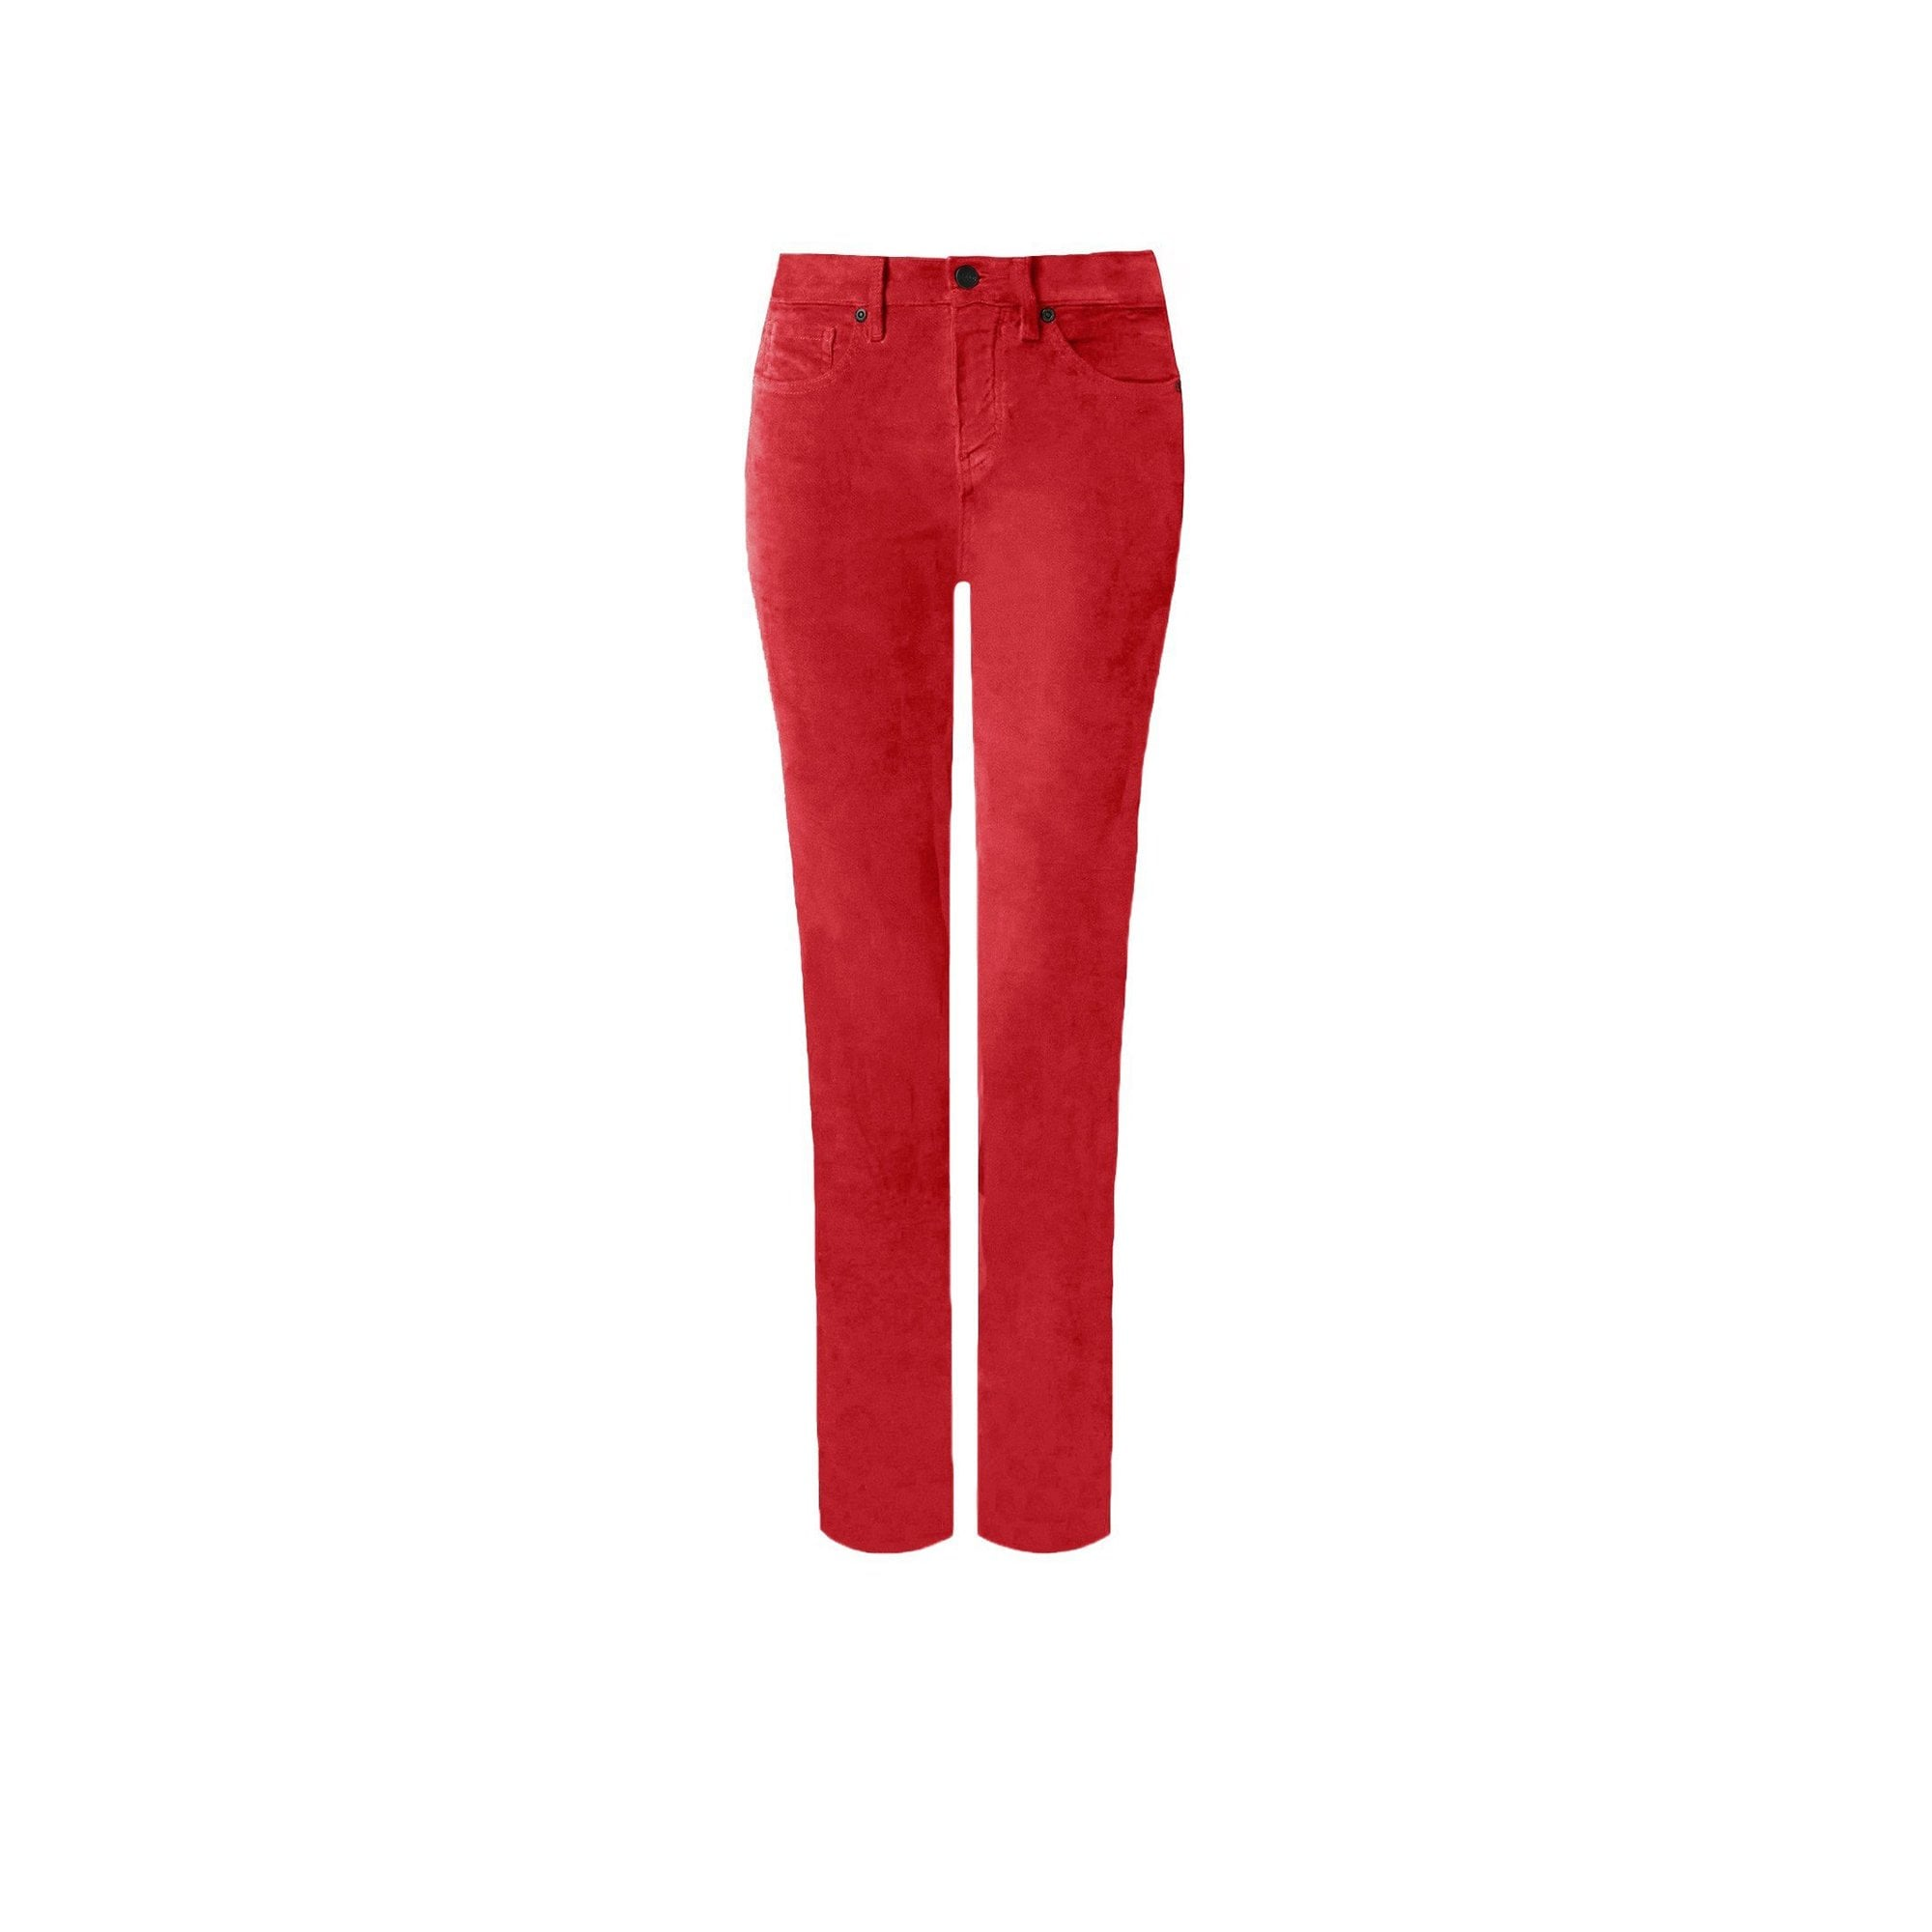 2f508859e02 NYDJ Velvet Sheri Slim Leg Jean In Gooseberry Red